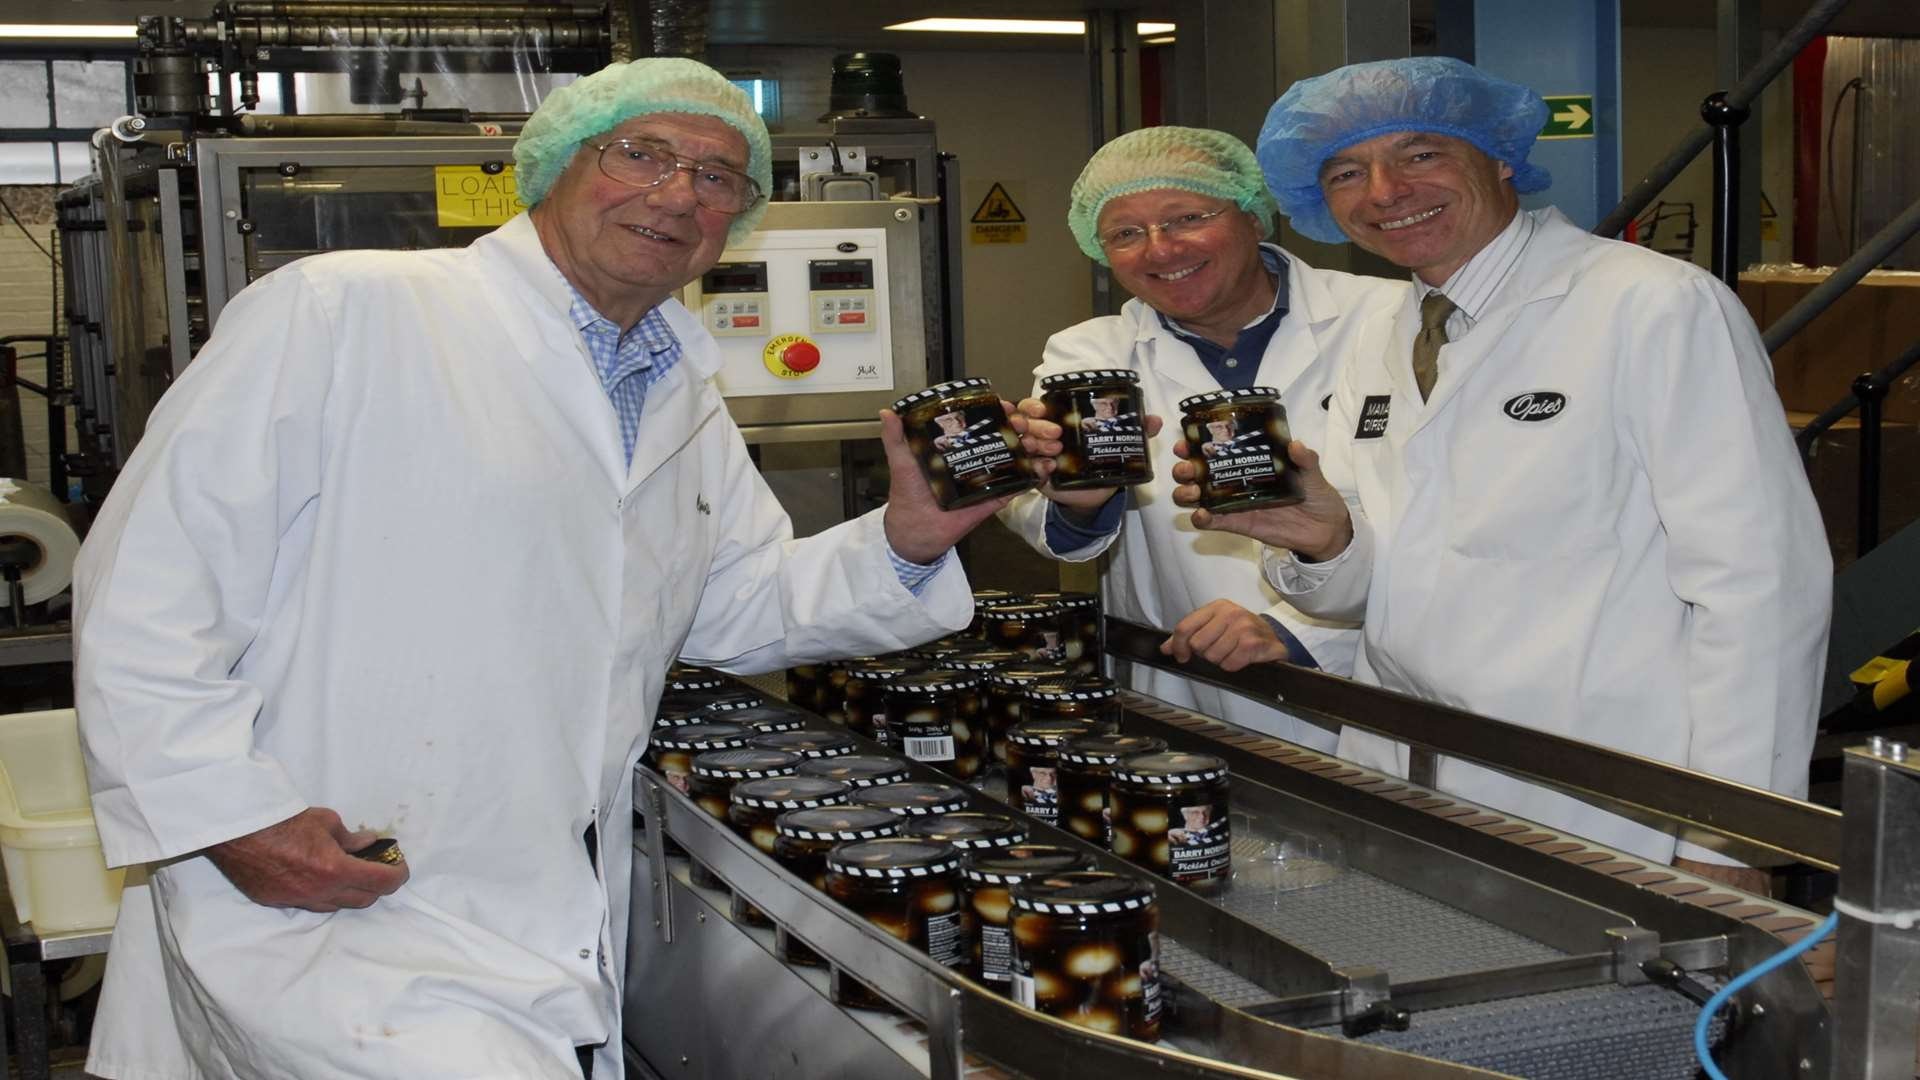 From left, Barry Norman, John Wringe and William Opie with the jars of pickled onions